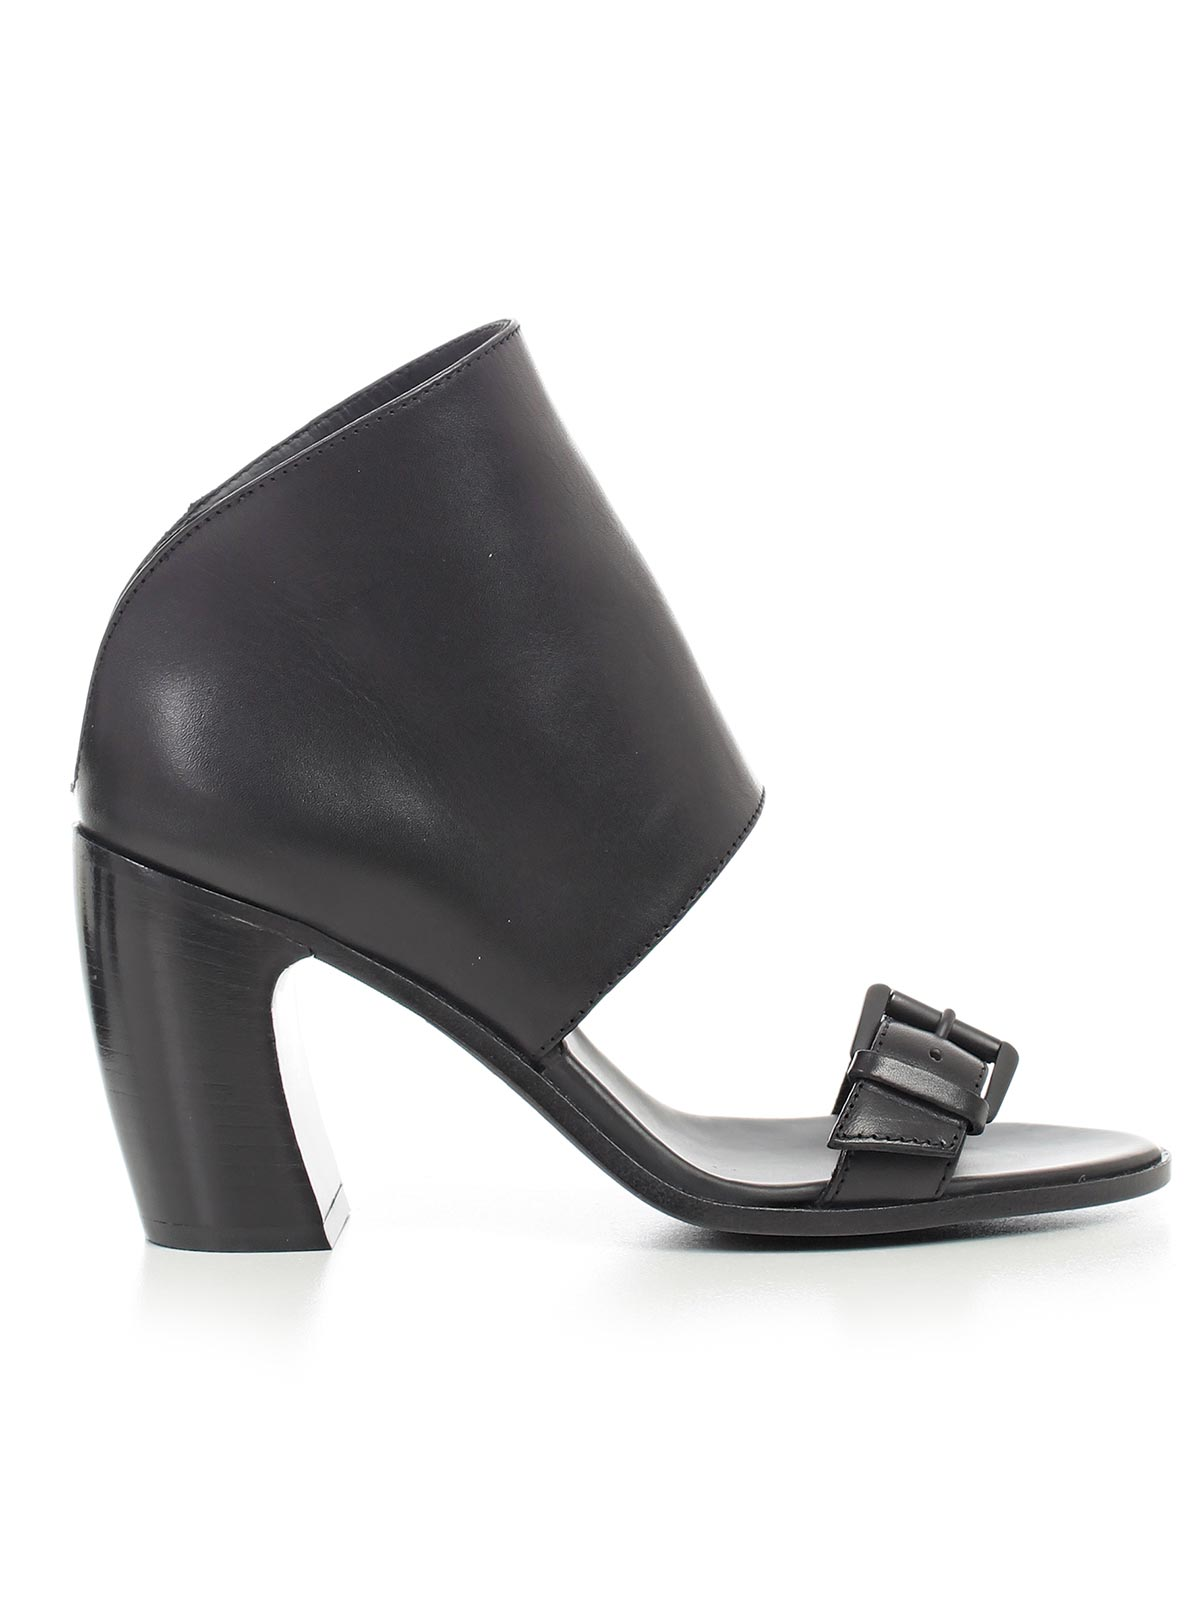 Picture of ANN DEMEULEMESTER Pumps